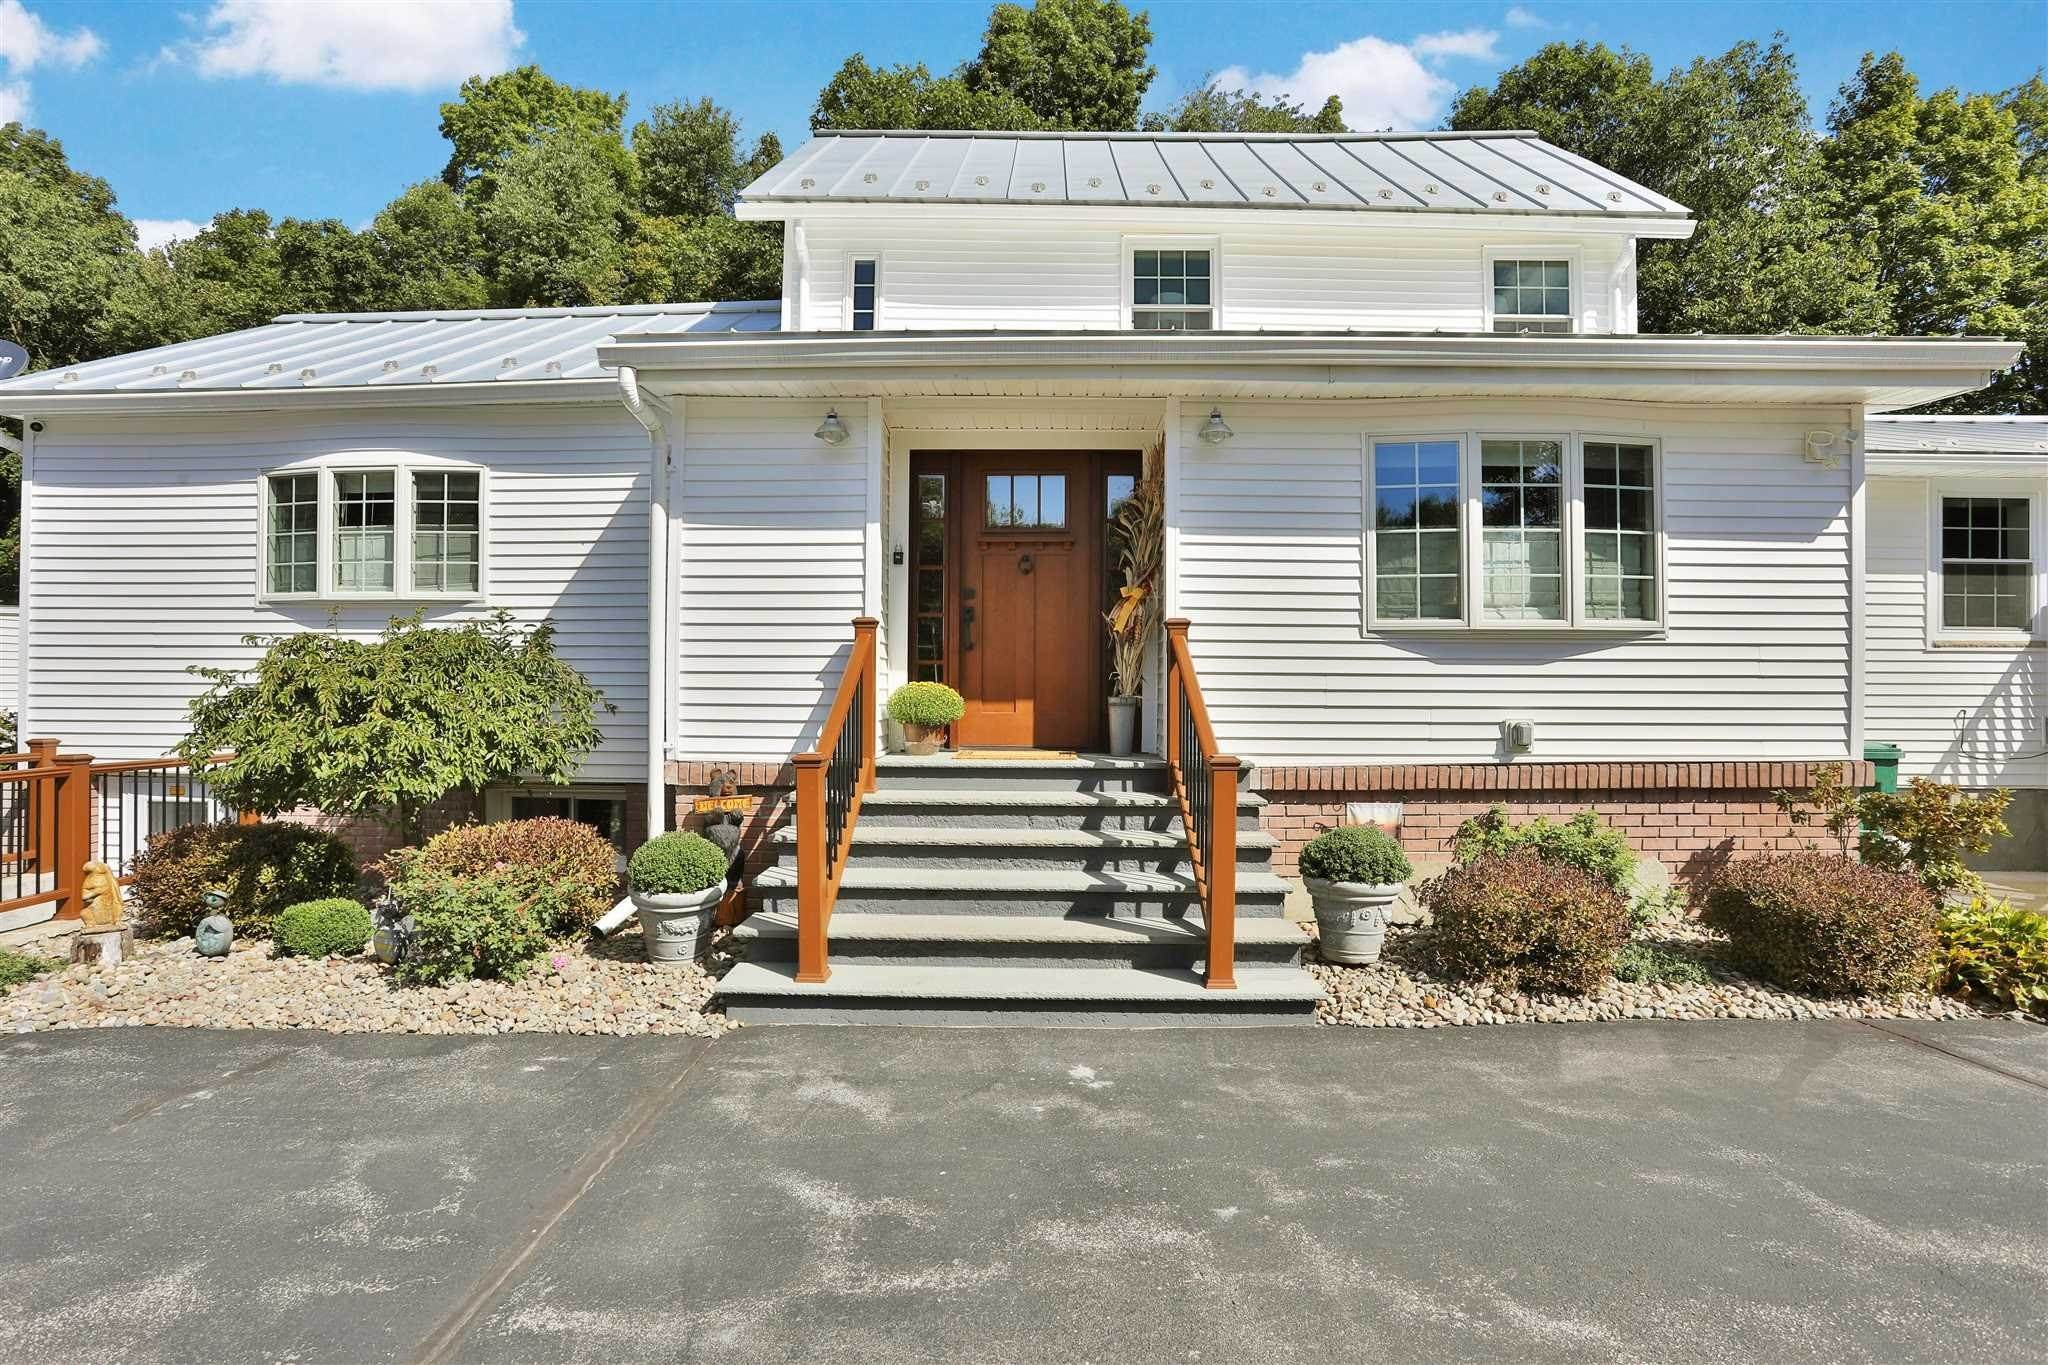 Single Family Homes for Sale at 11 SOLLAZZO LANE Plattekill, New York 12528 United States